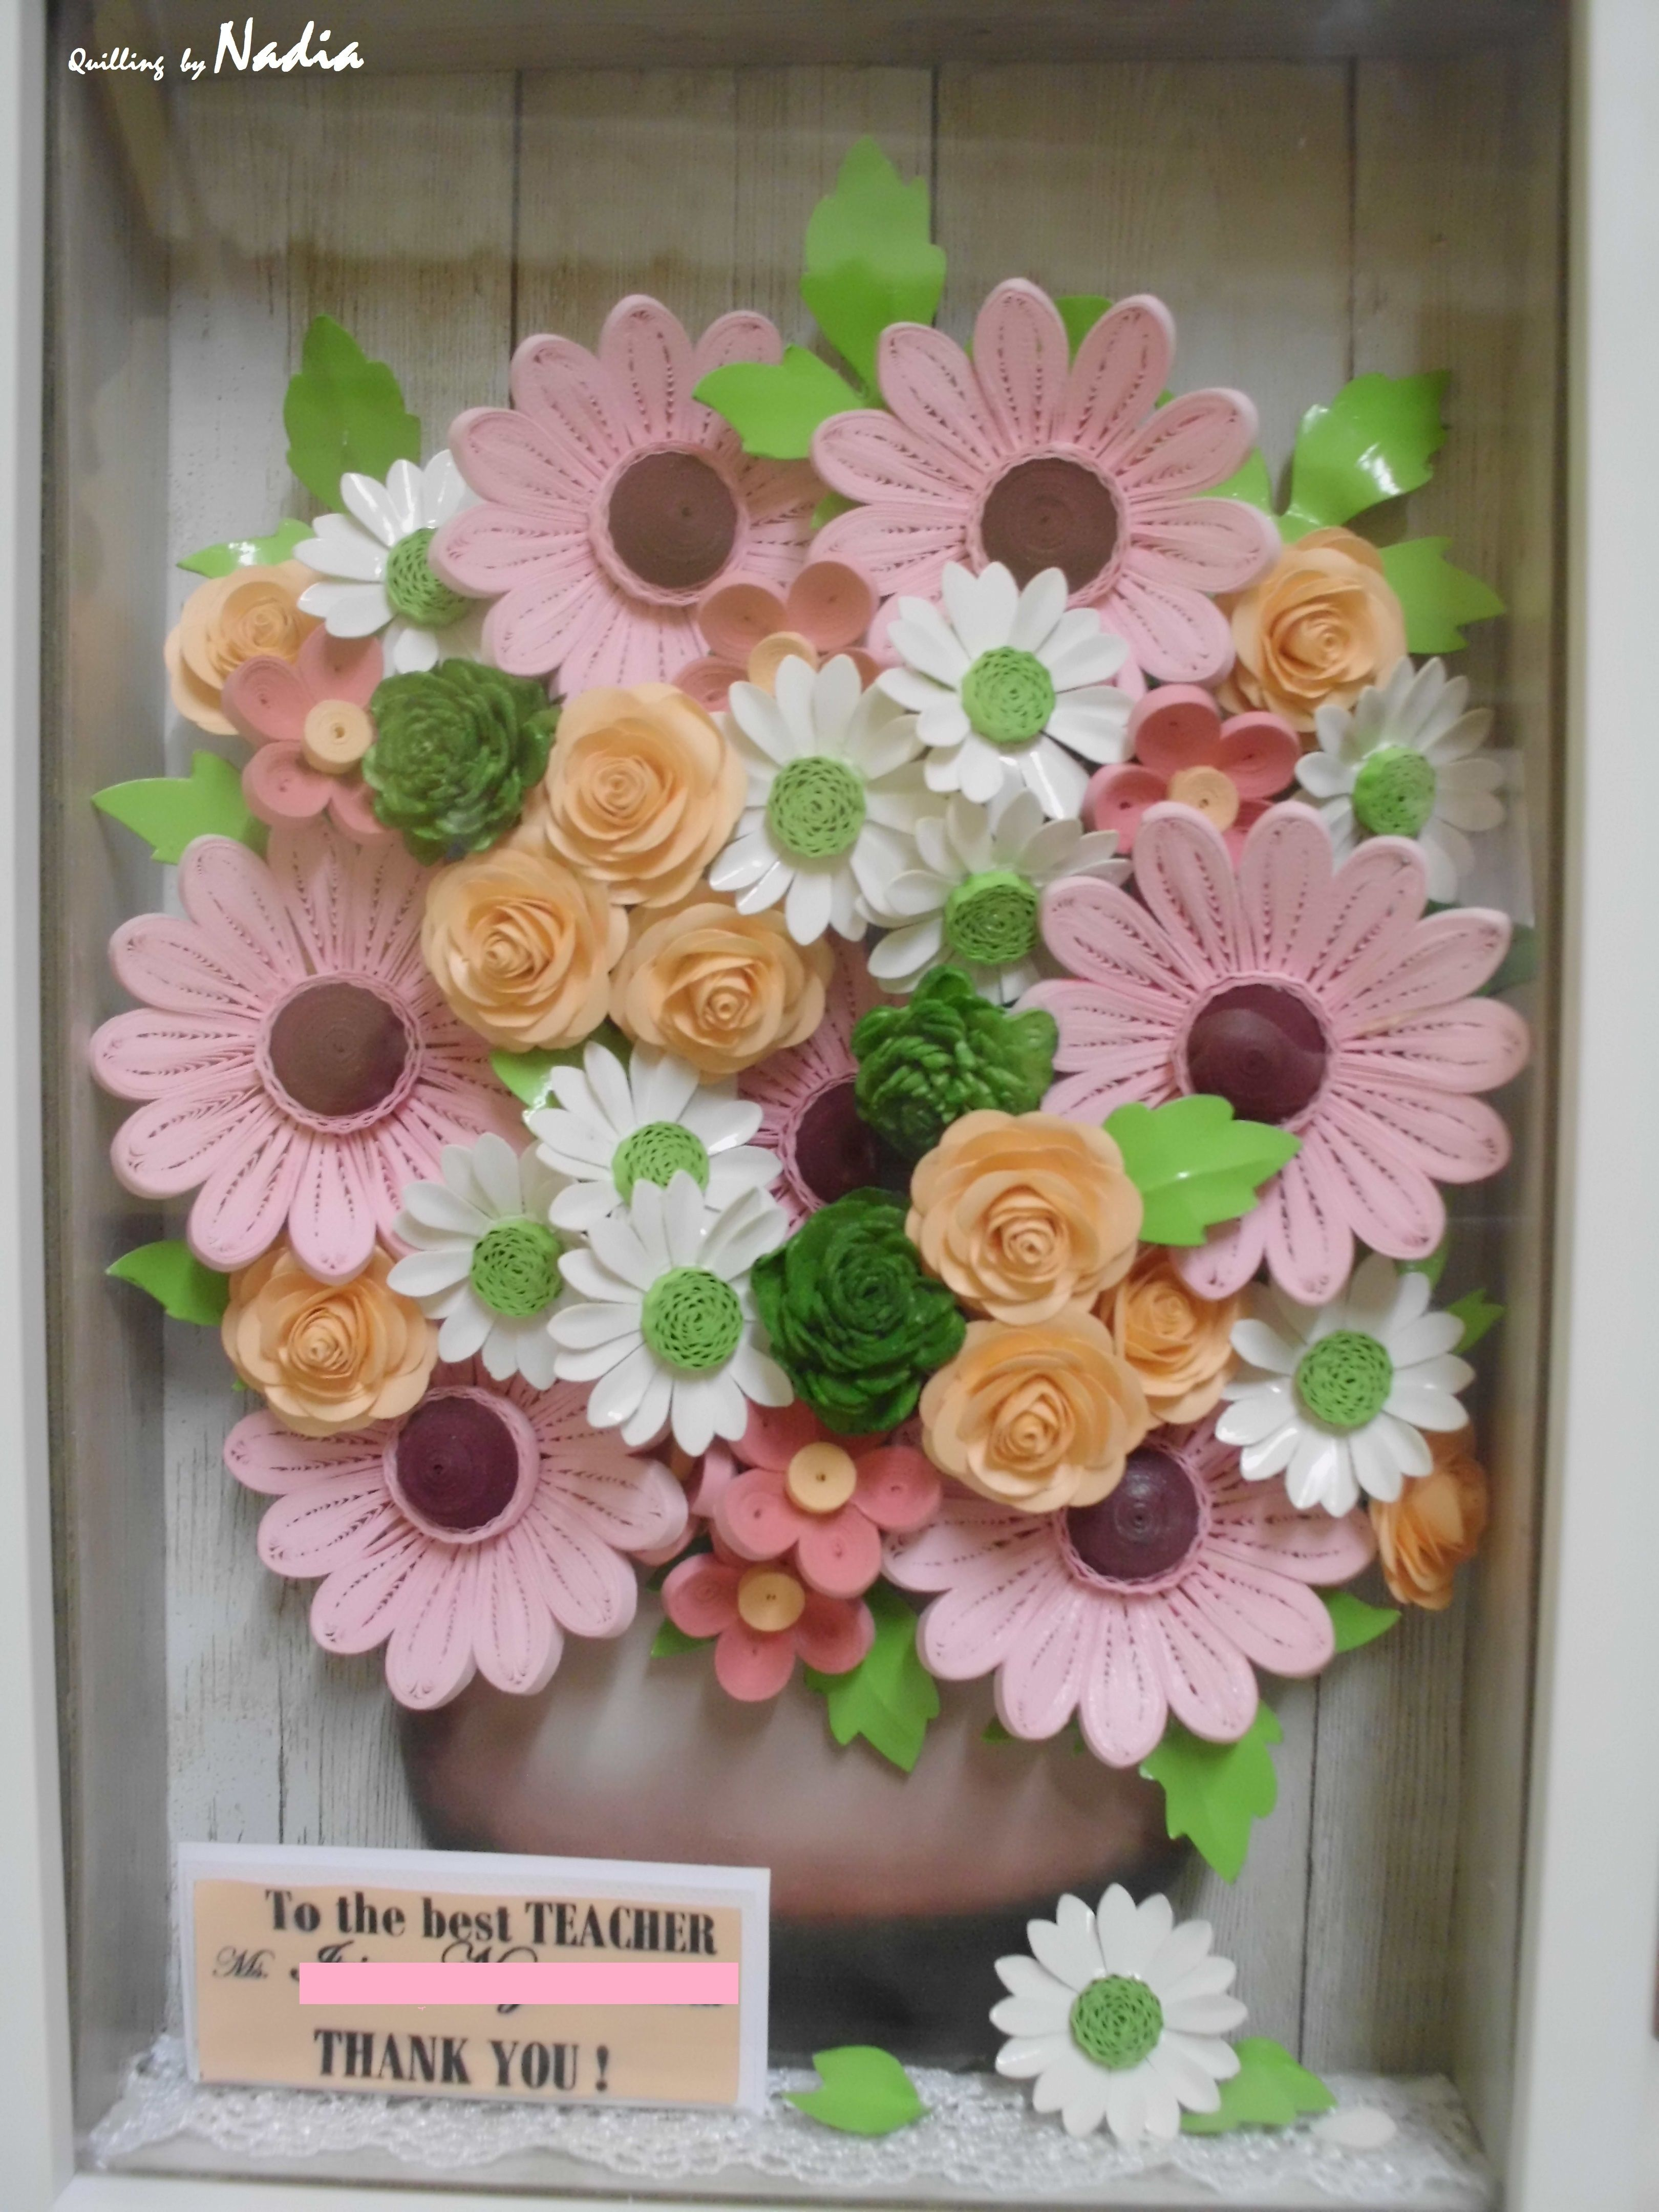 Pin By Nadia Quilling Art On Quilling Art Pinterest Quilling